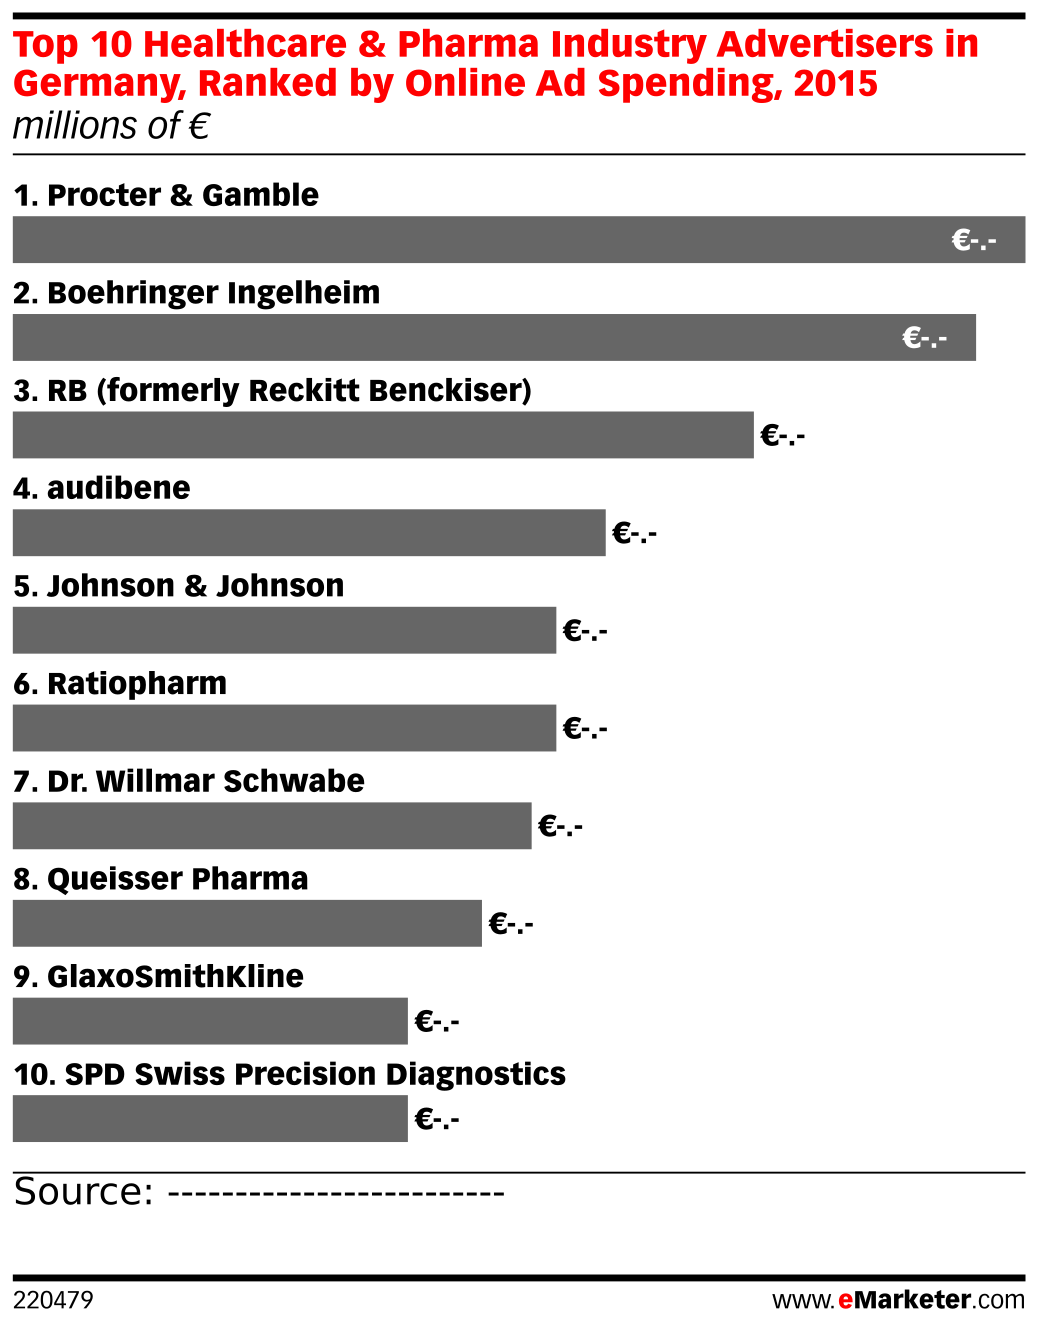 Top 10 Healthcare & Pharma Industry Advertisers in Germany, Ranked by Online Ad Spending, 2015 (millions of €)